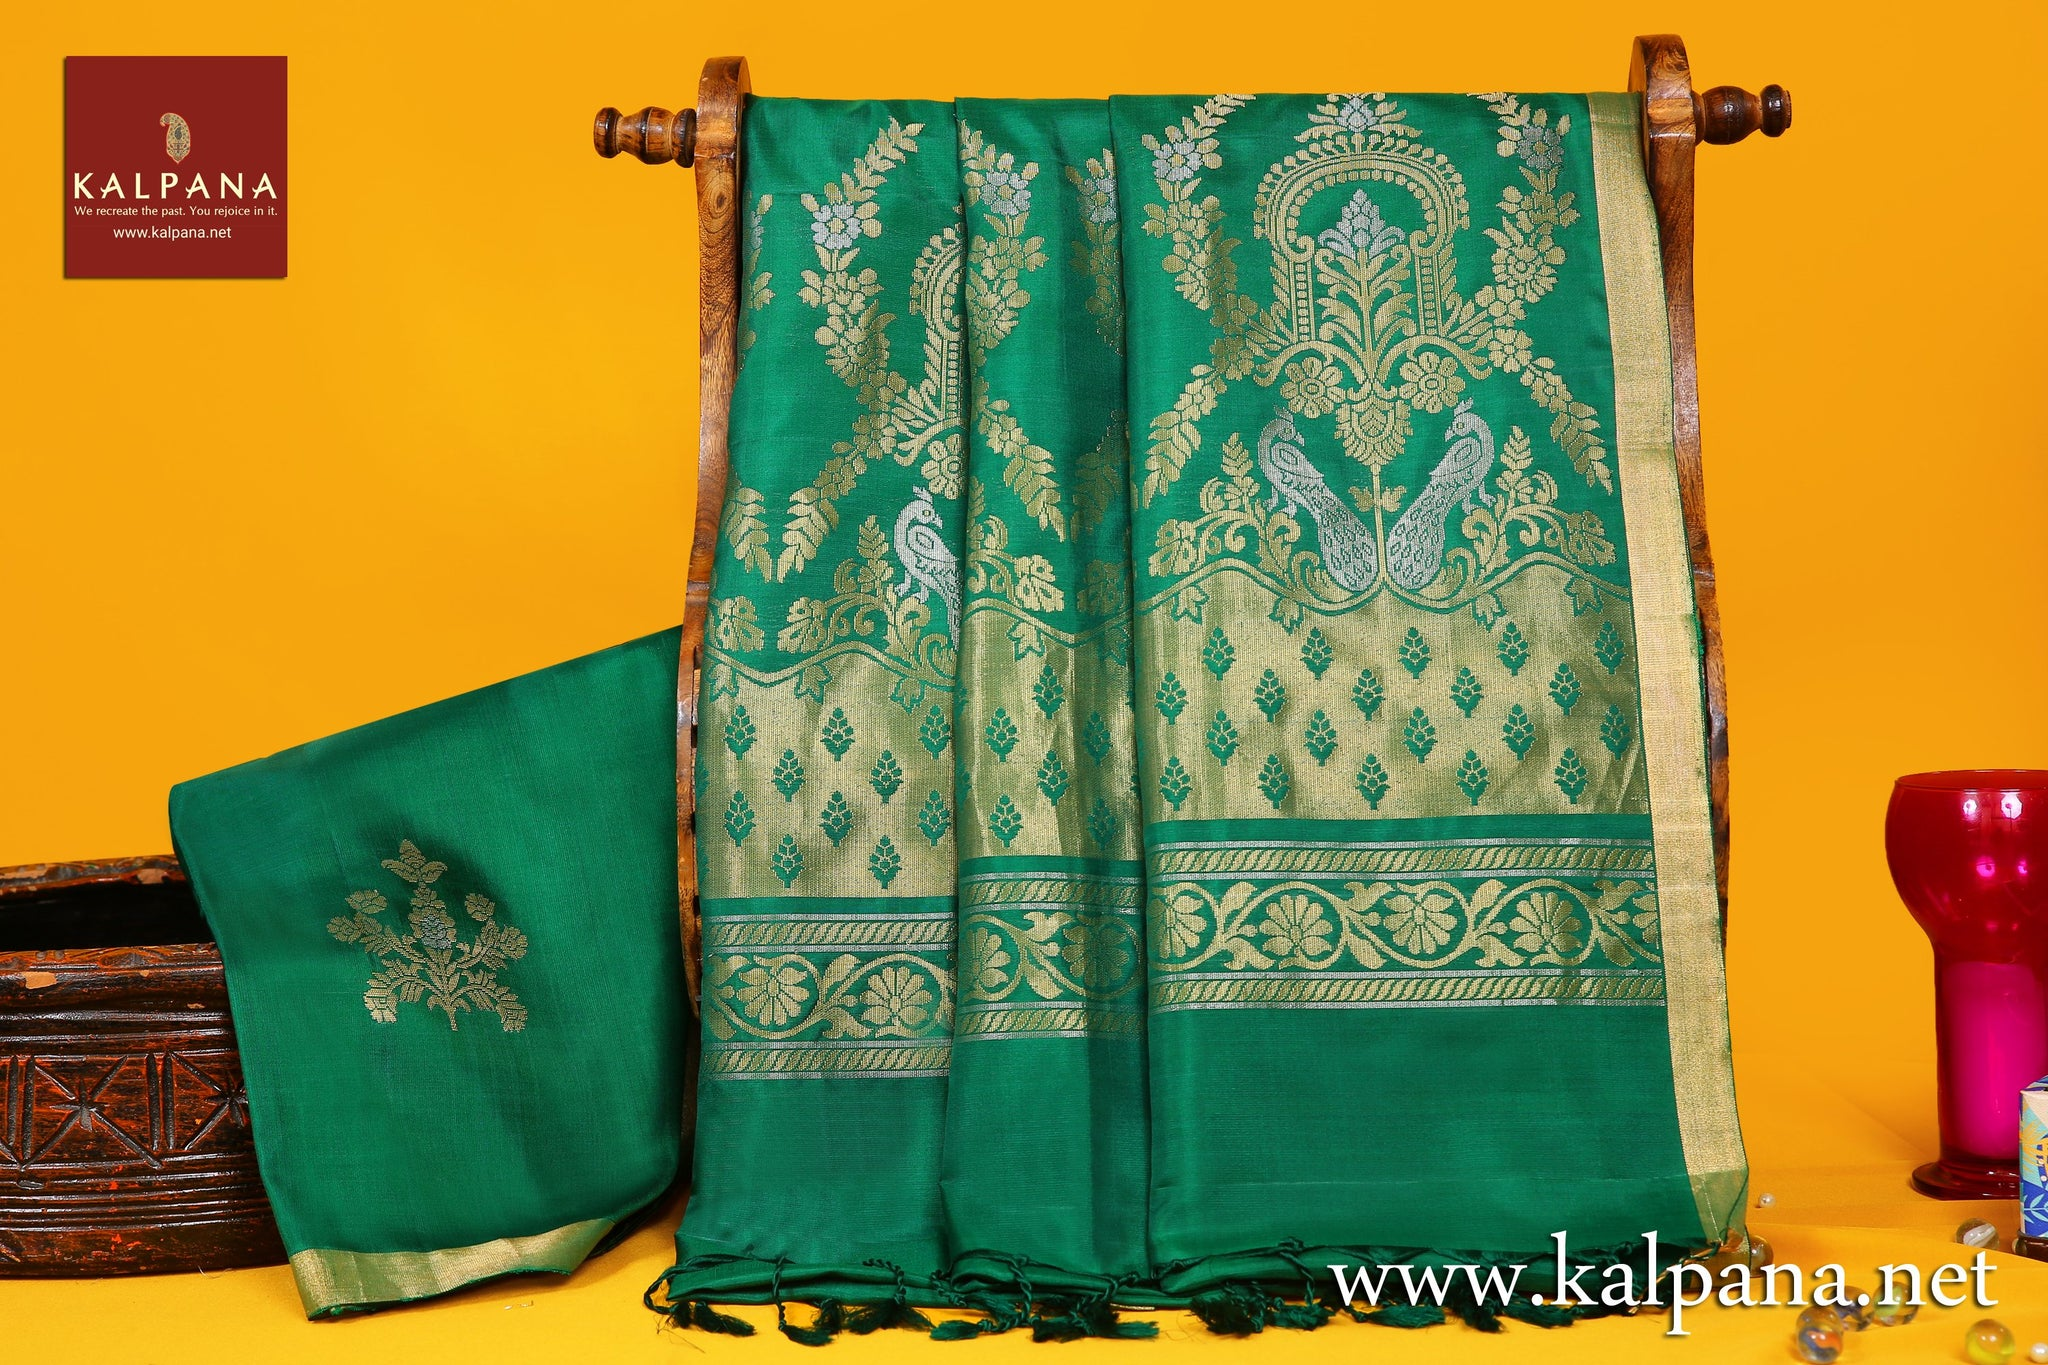 Coimbatore Handloom Pure Silk Saree with All Over Woven Motifs and Woven Zari Border. The Palla is  Woven Zari. It comes with Self Colored Plain Unstitched Blouse with Zari Border. Perfect for Multi Occasion Wear.  Recommended for All season(s). Dry Clean Only